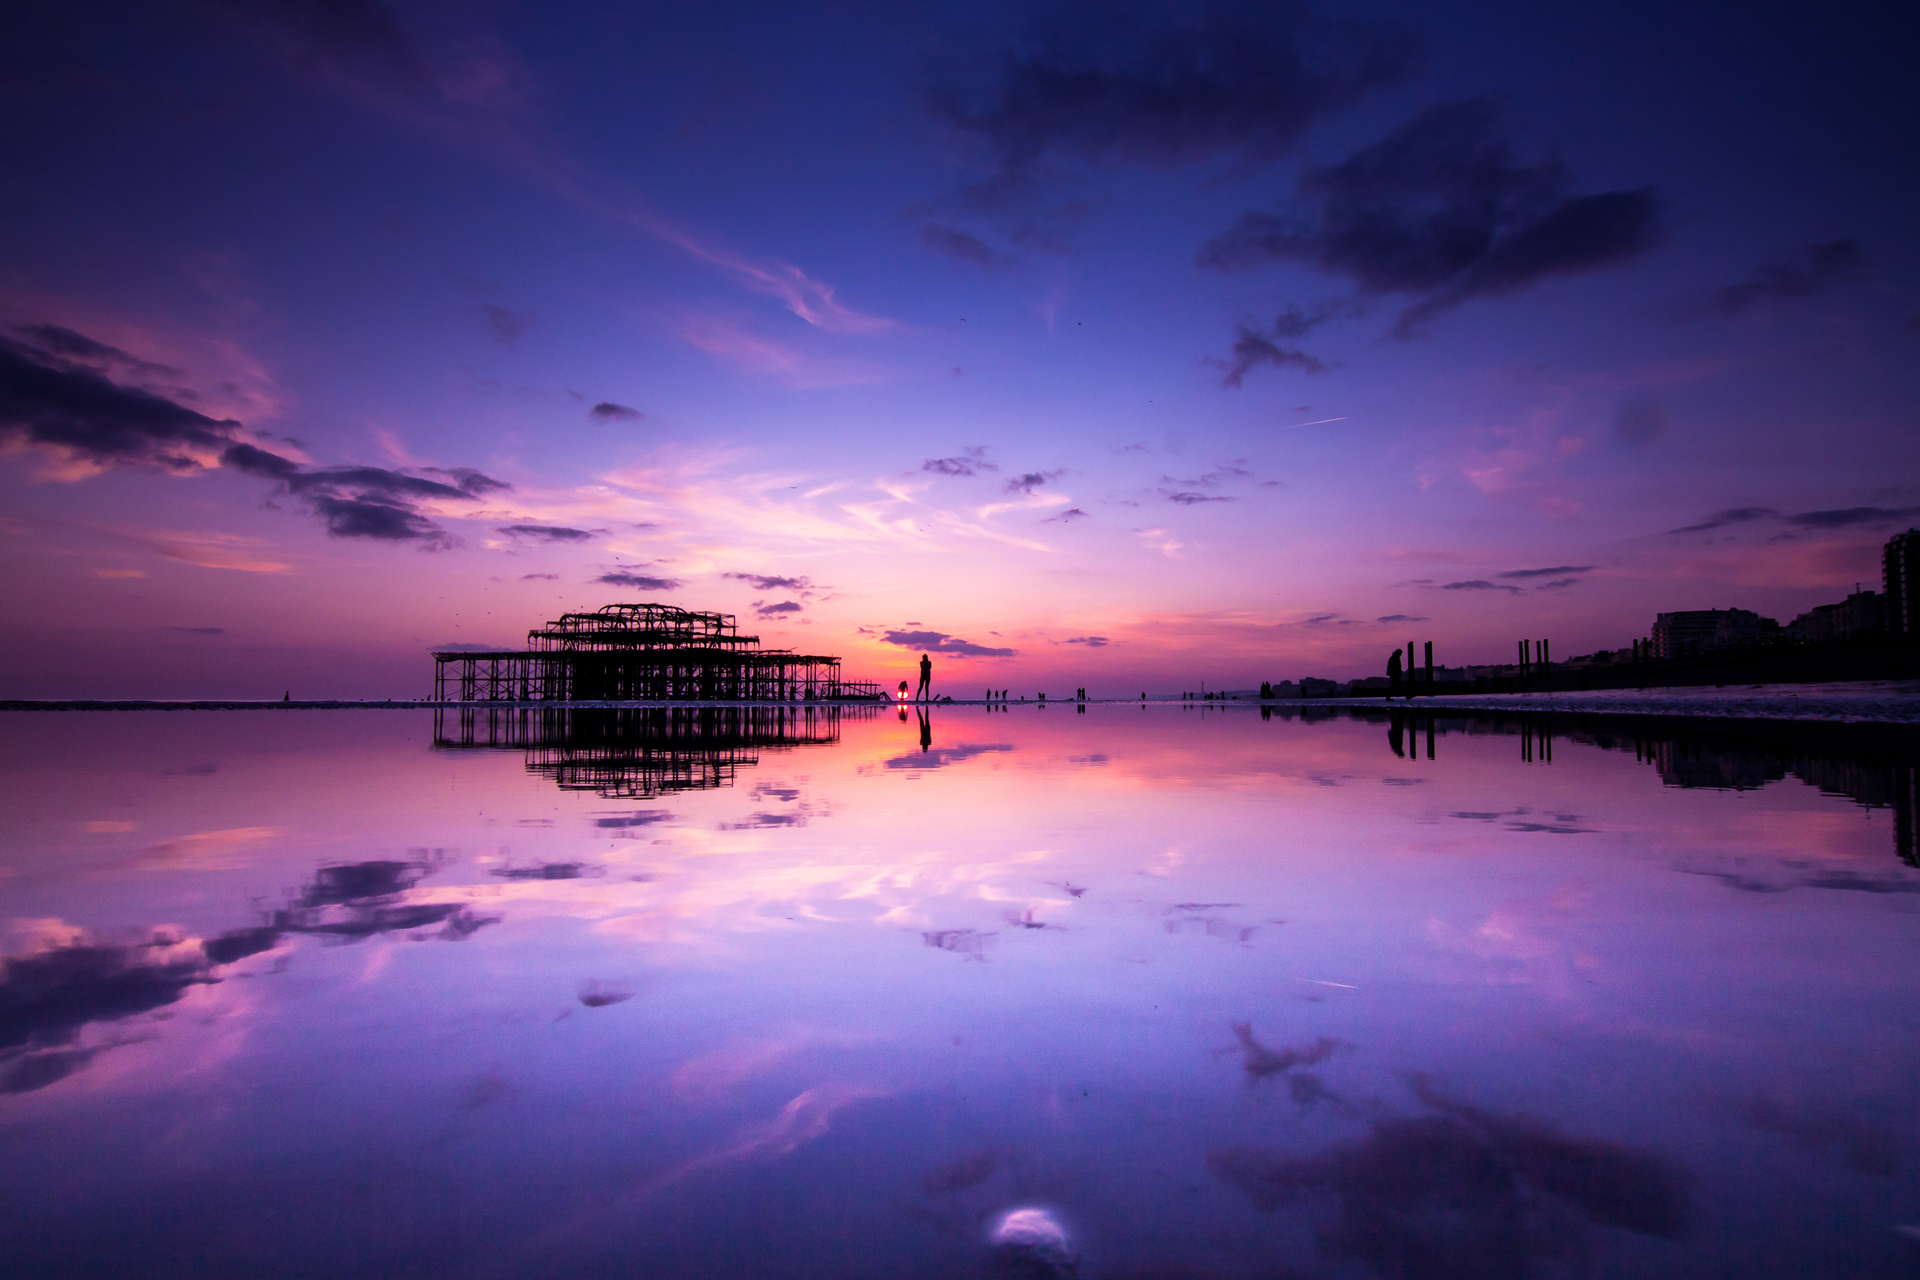 Brighton Images | Resolution: 1920x1280, Bette Gade